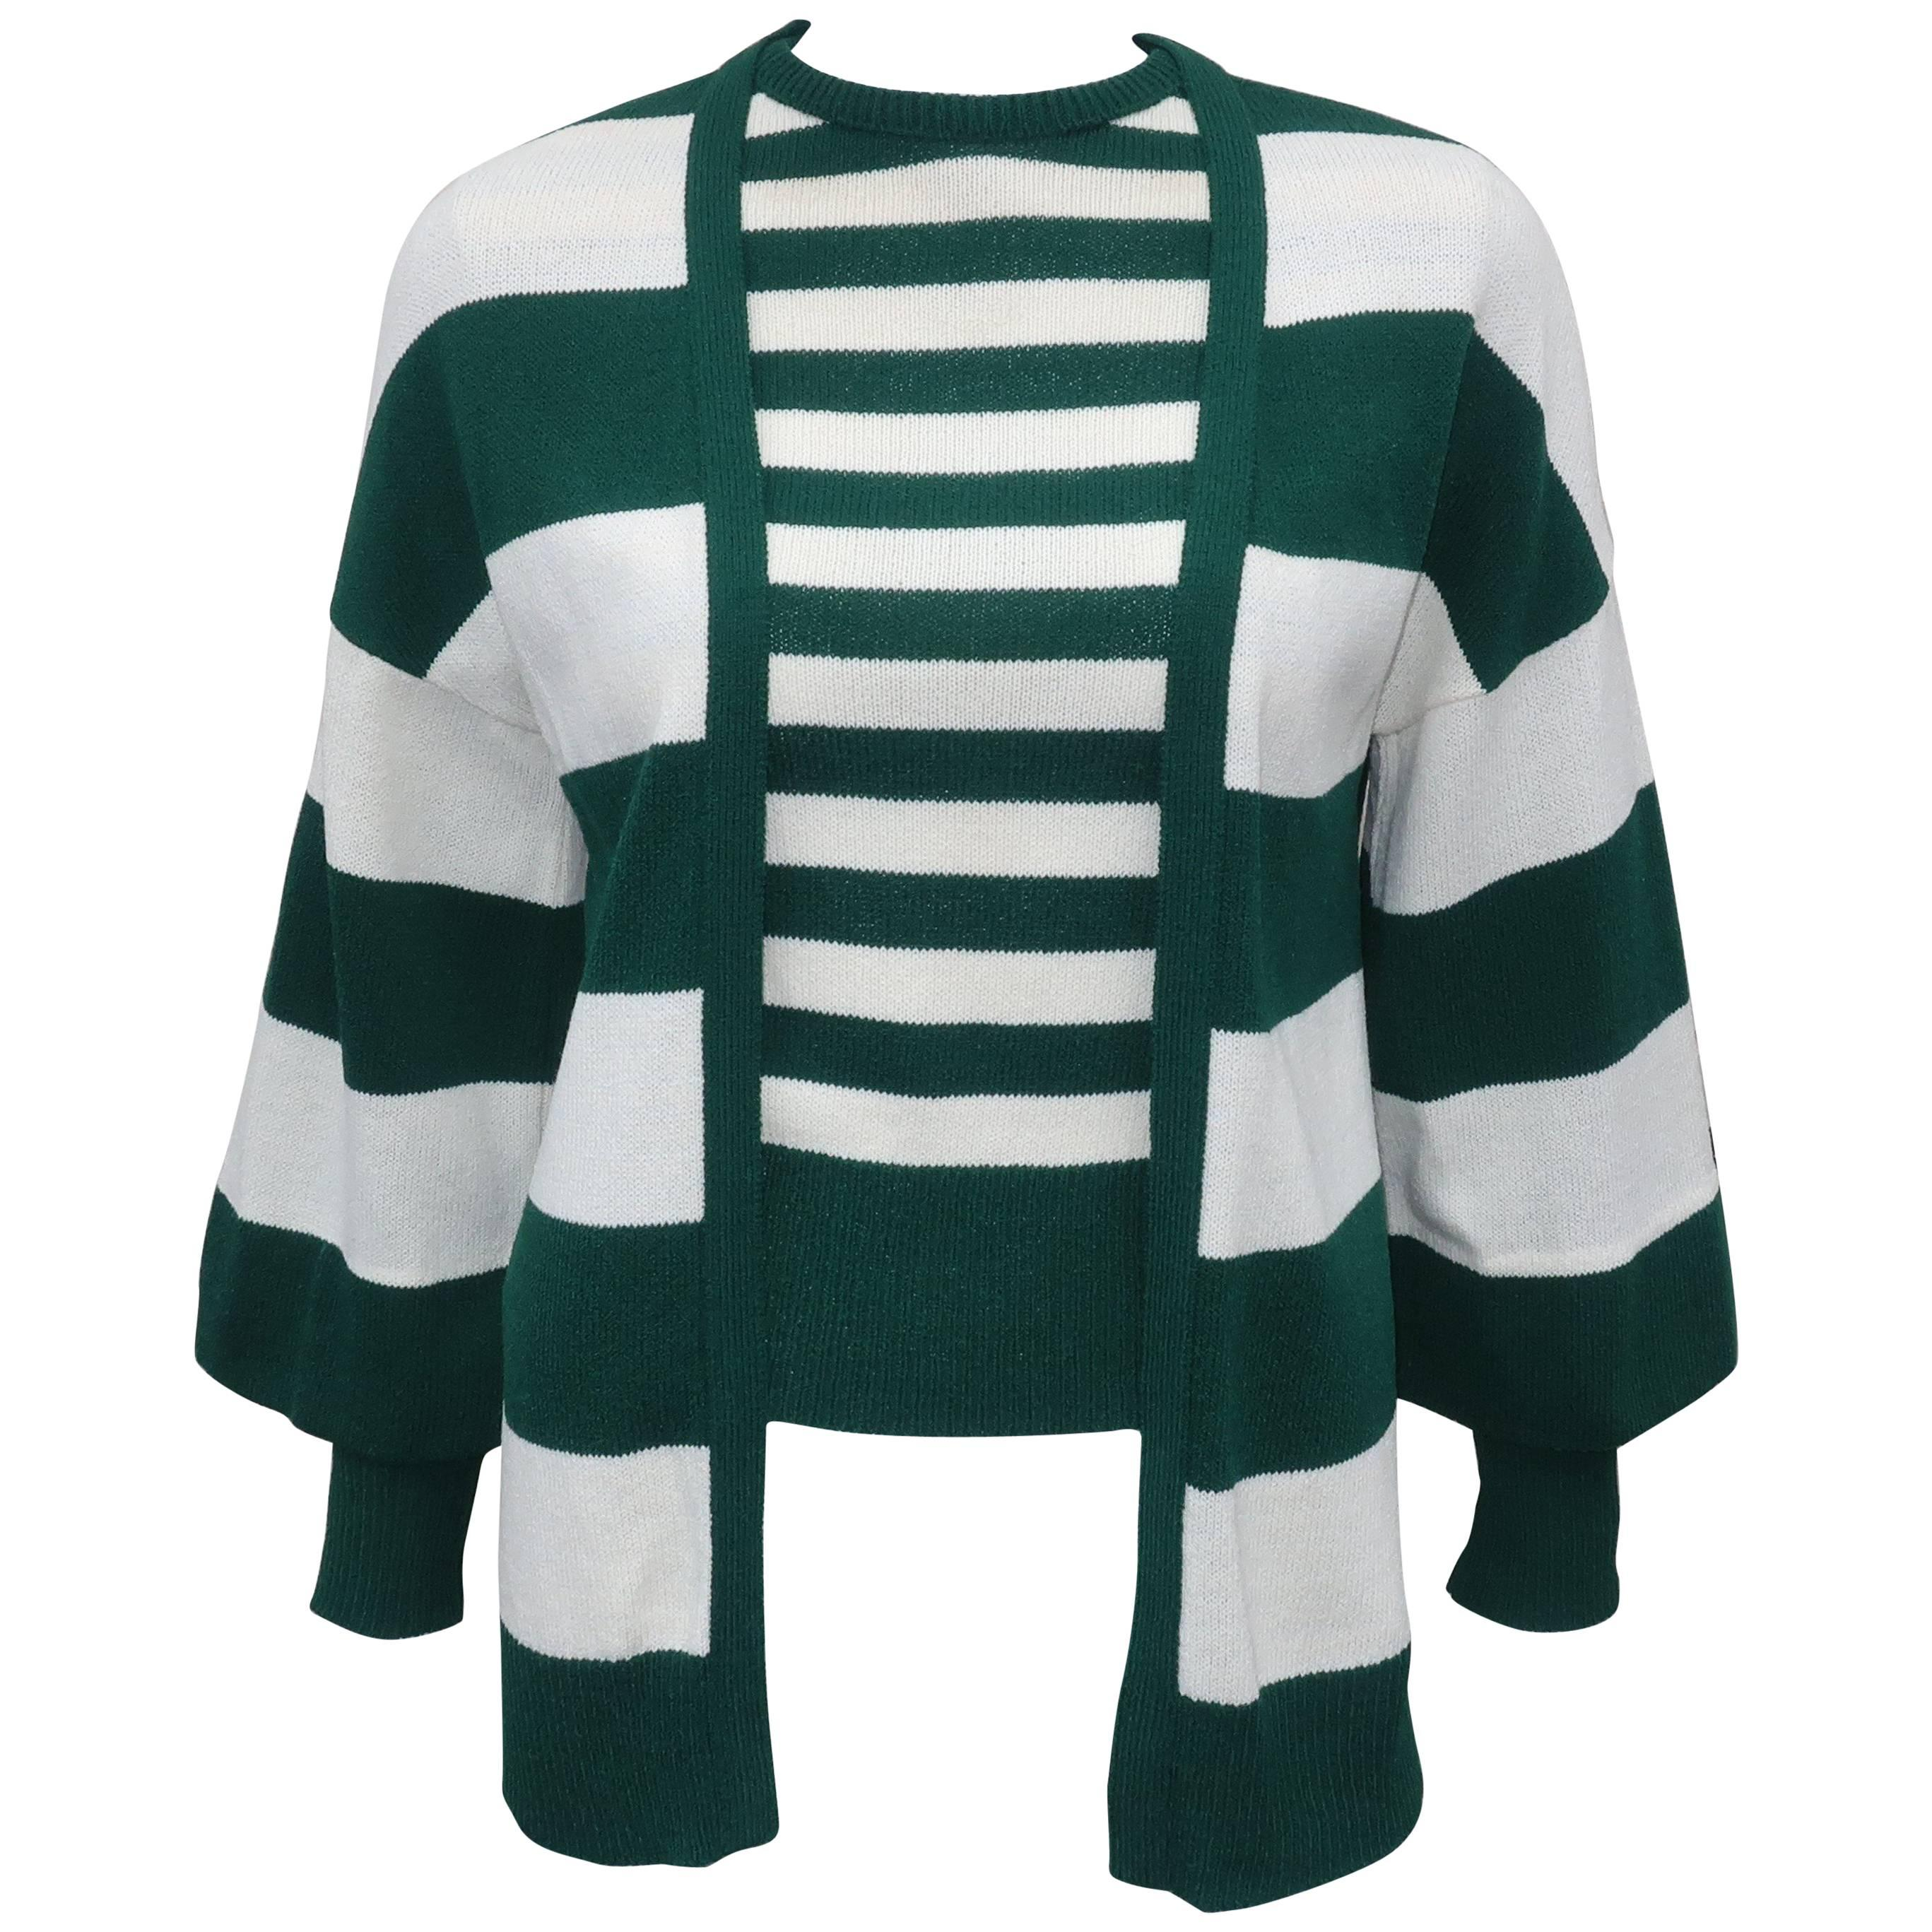 1970's Saks Fifth Avenue Green & White Striped Knit Sweater Set